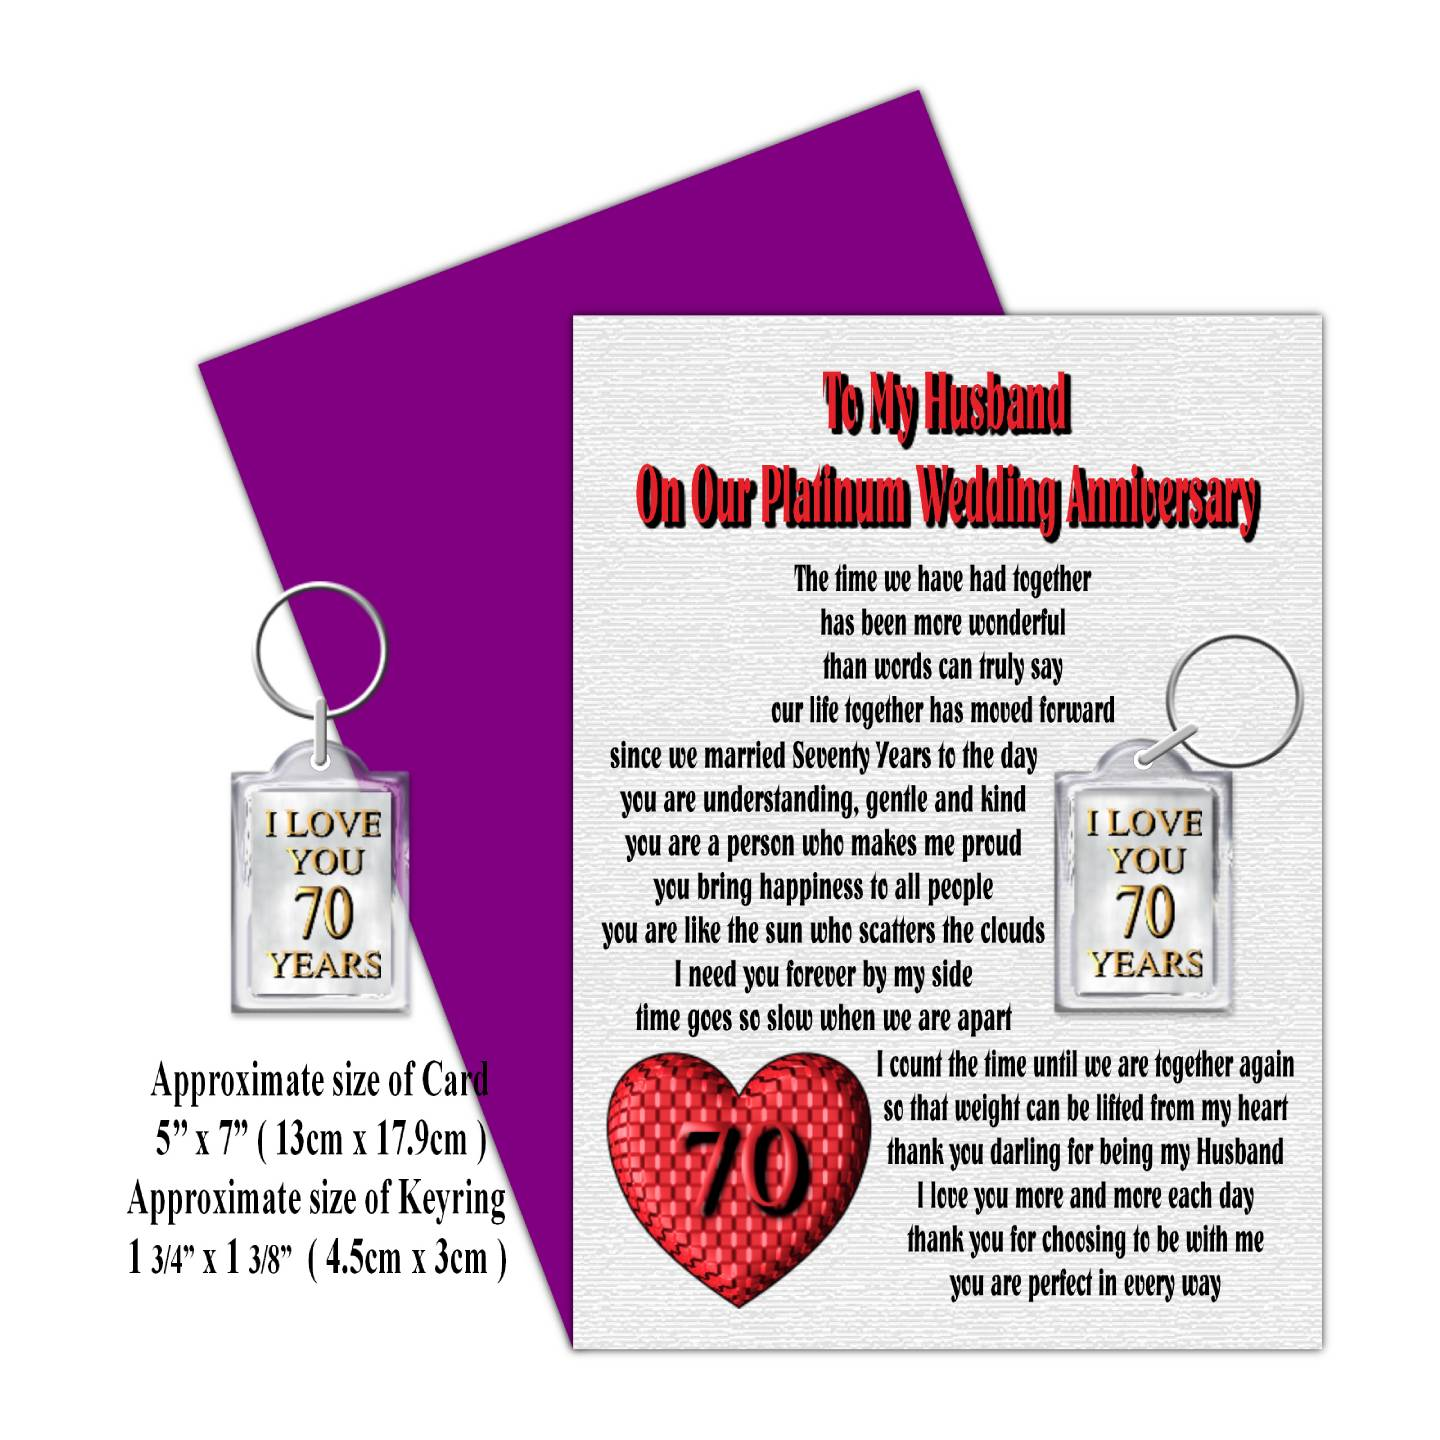 25th Wedding Anniversary Gift Ideas Your Husband Uk : Have one to sell? Sell it yourself